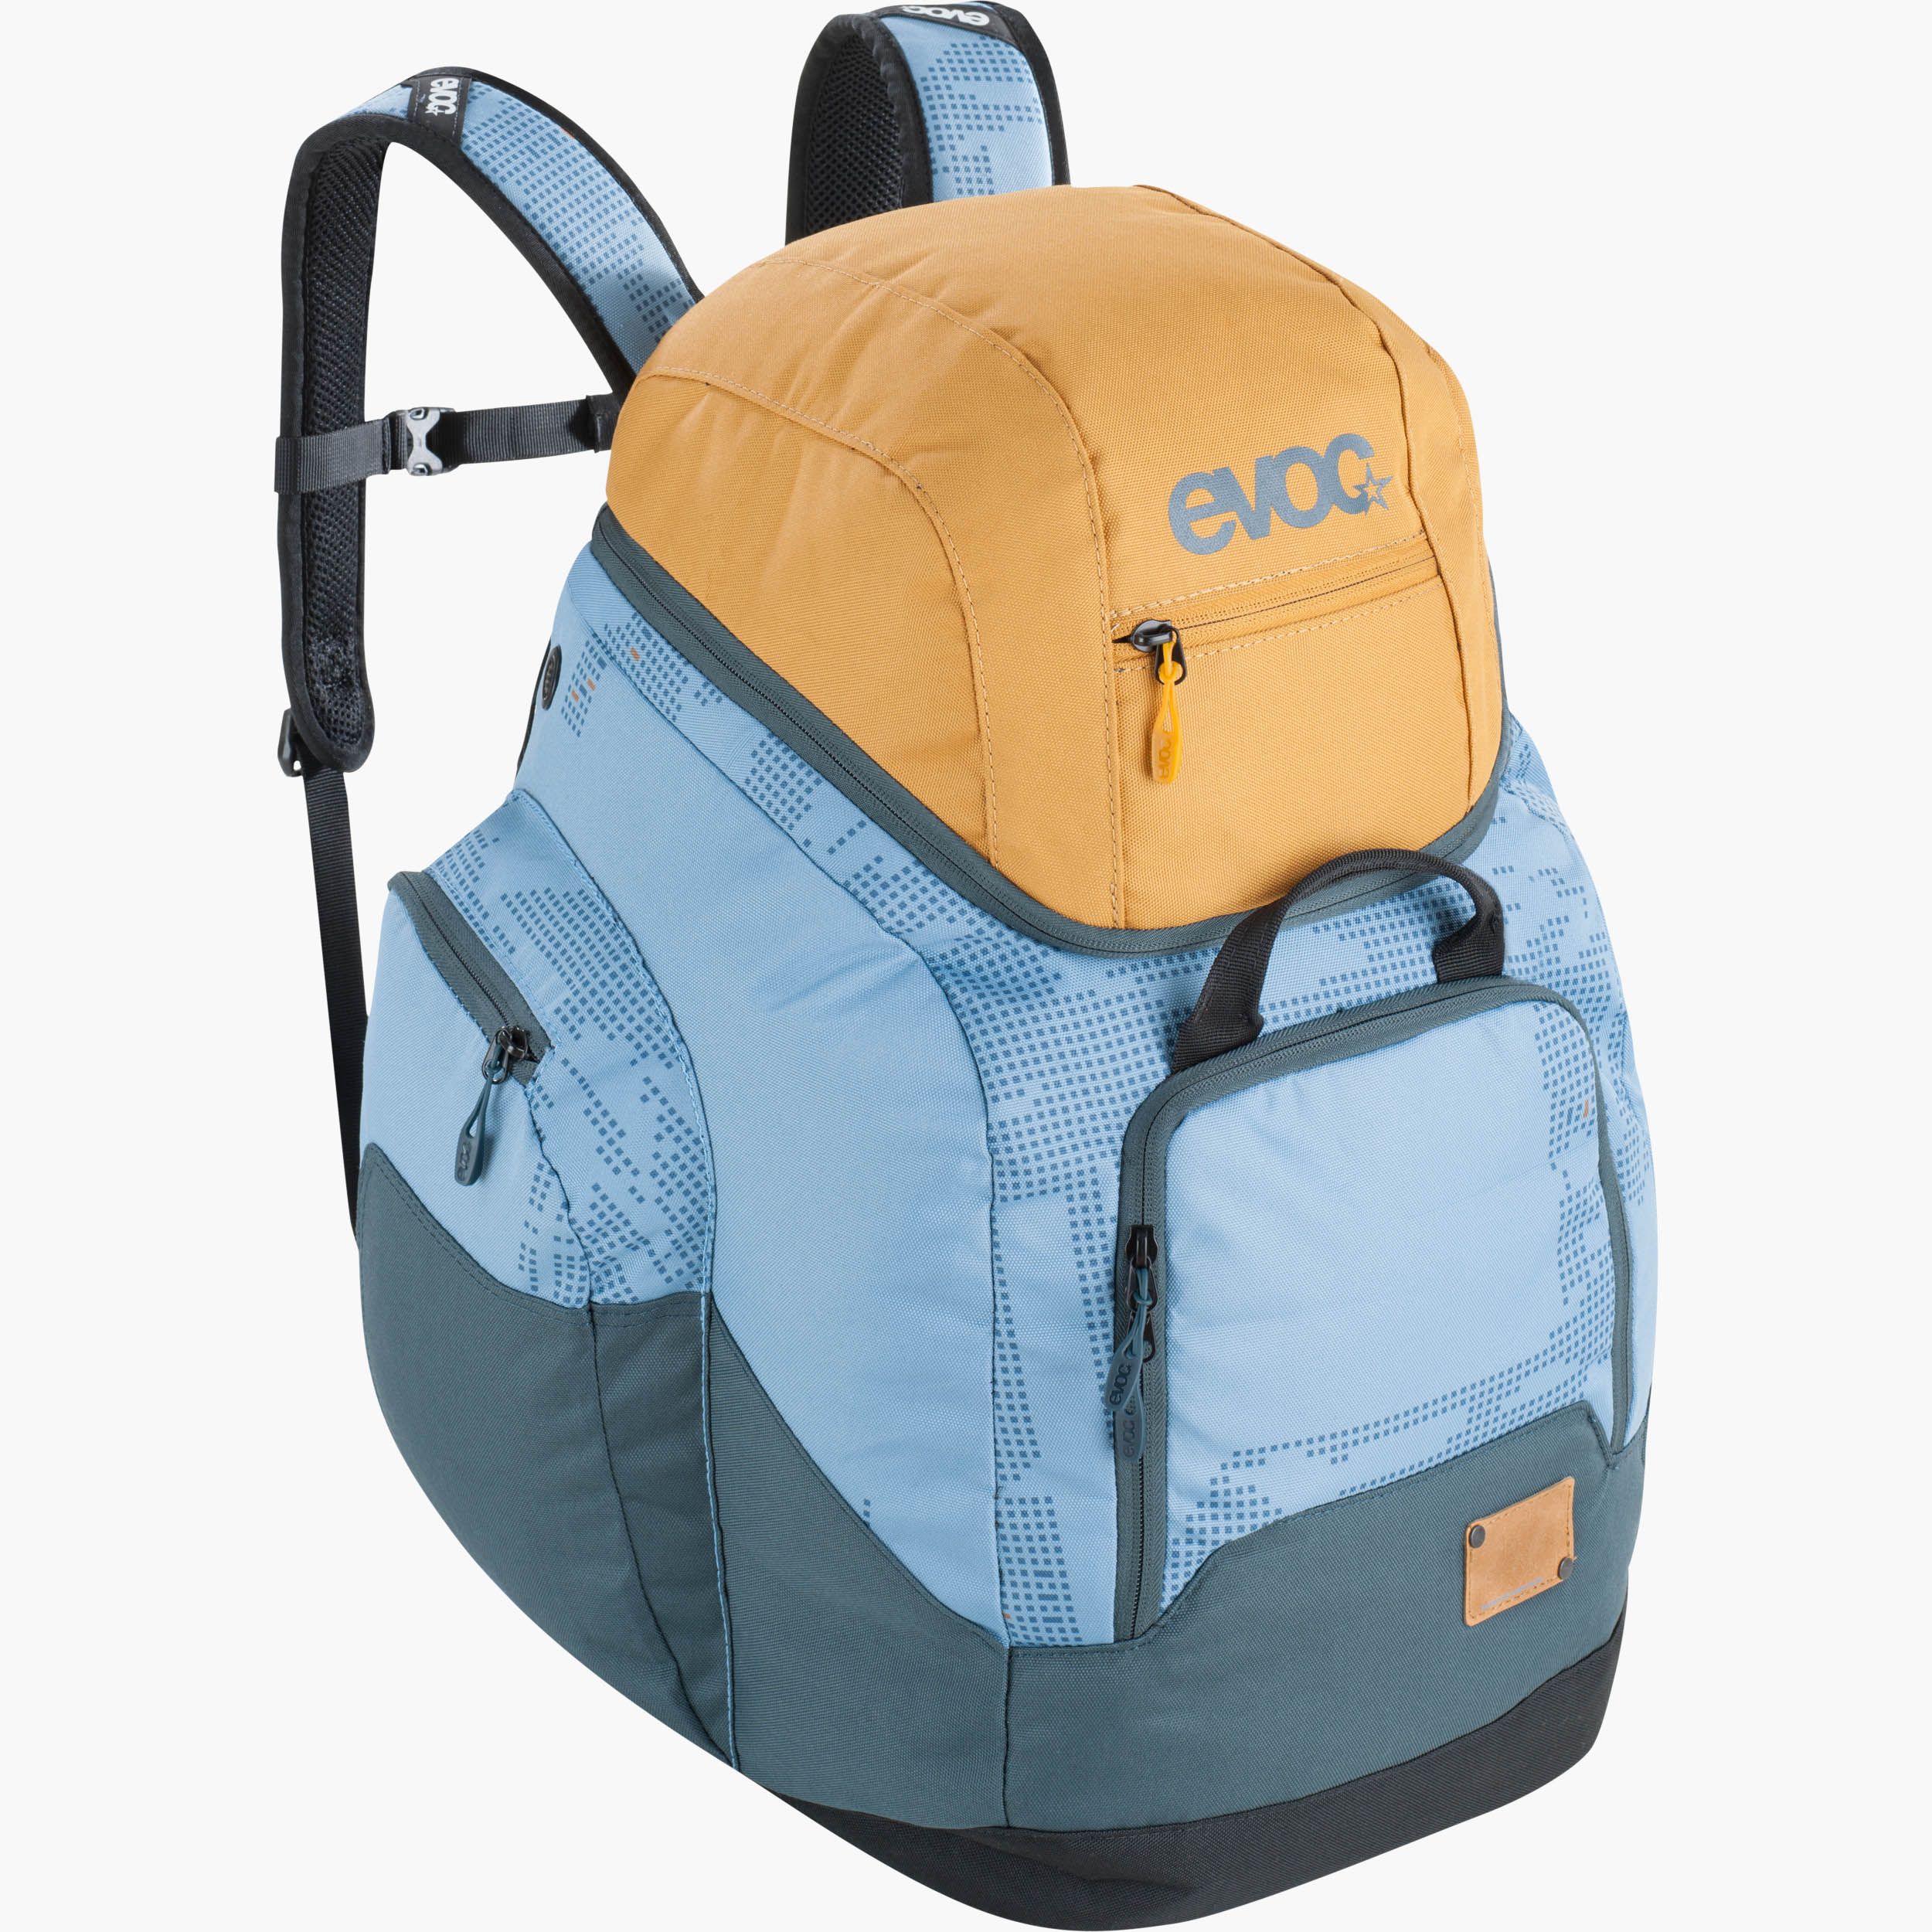 BOOT HELMET BACKPACK